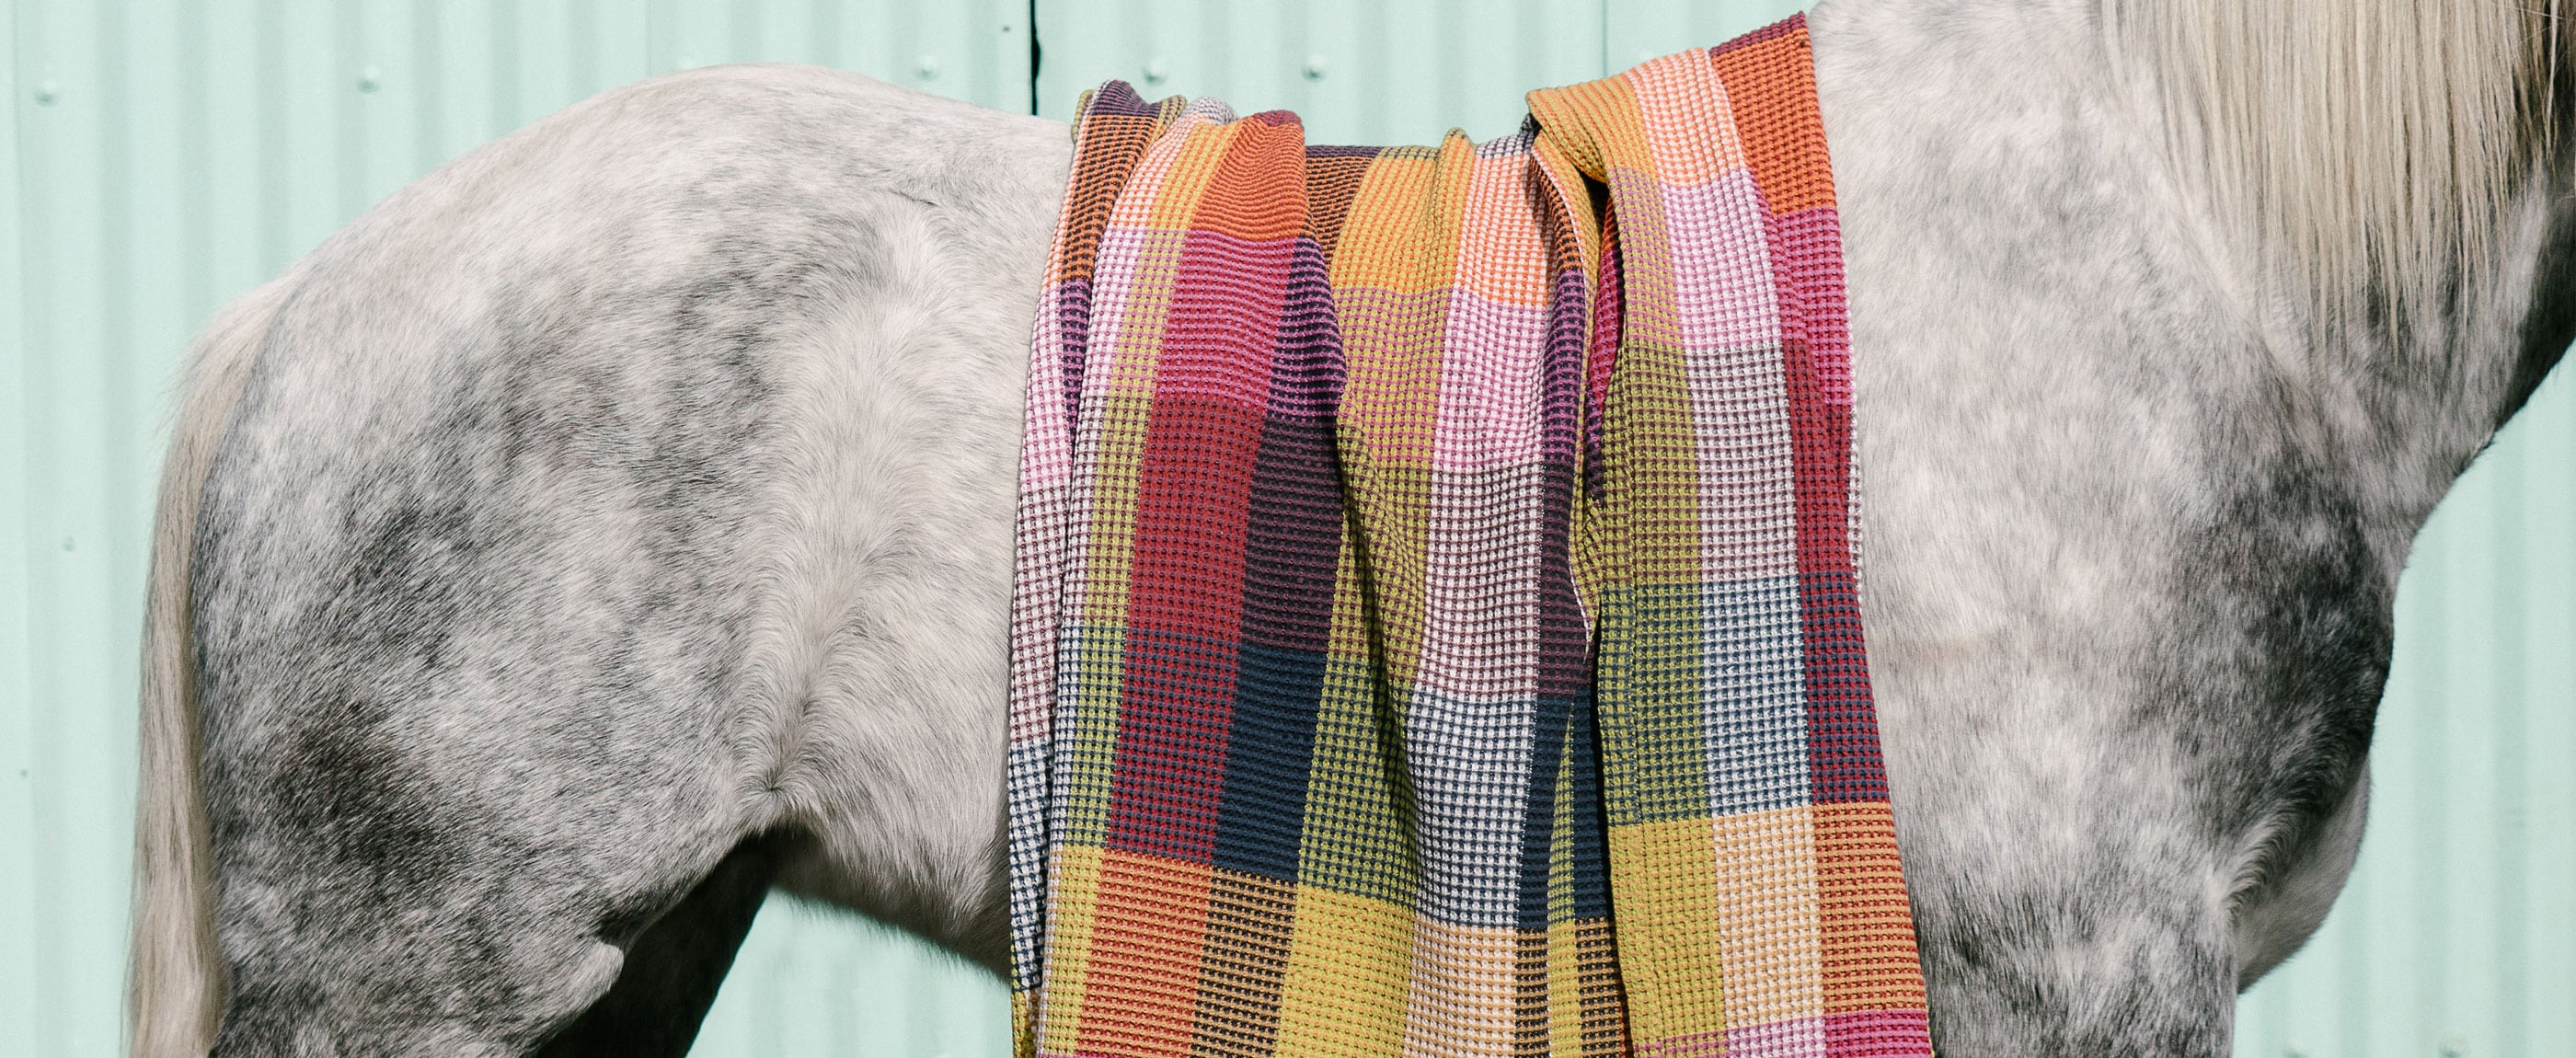 The Mungo Vrou-vrou blanket looks good in the home, or on a horse.